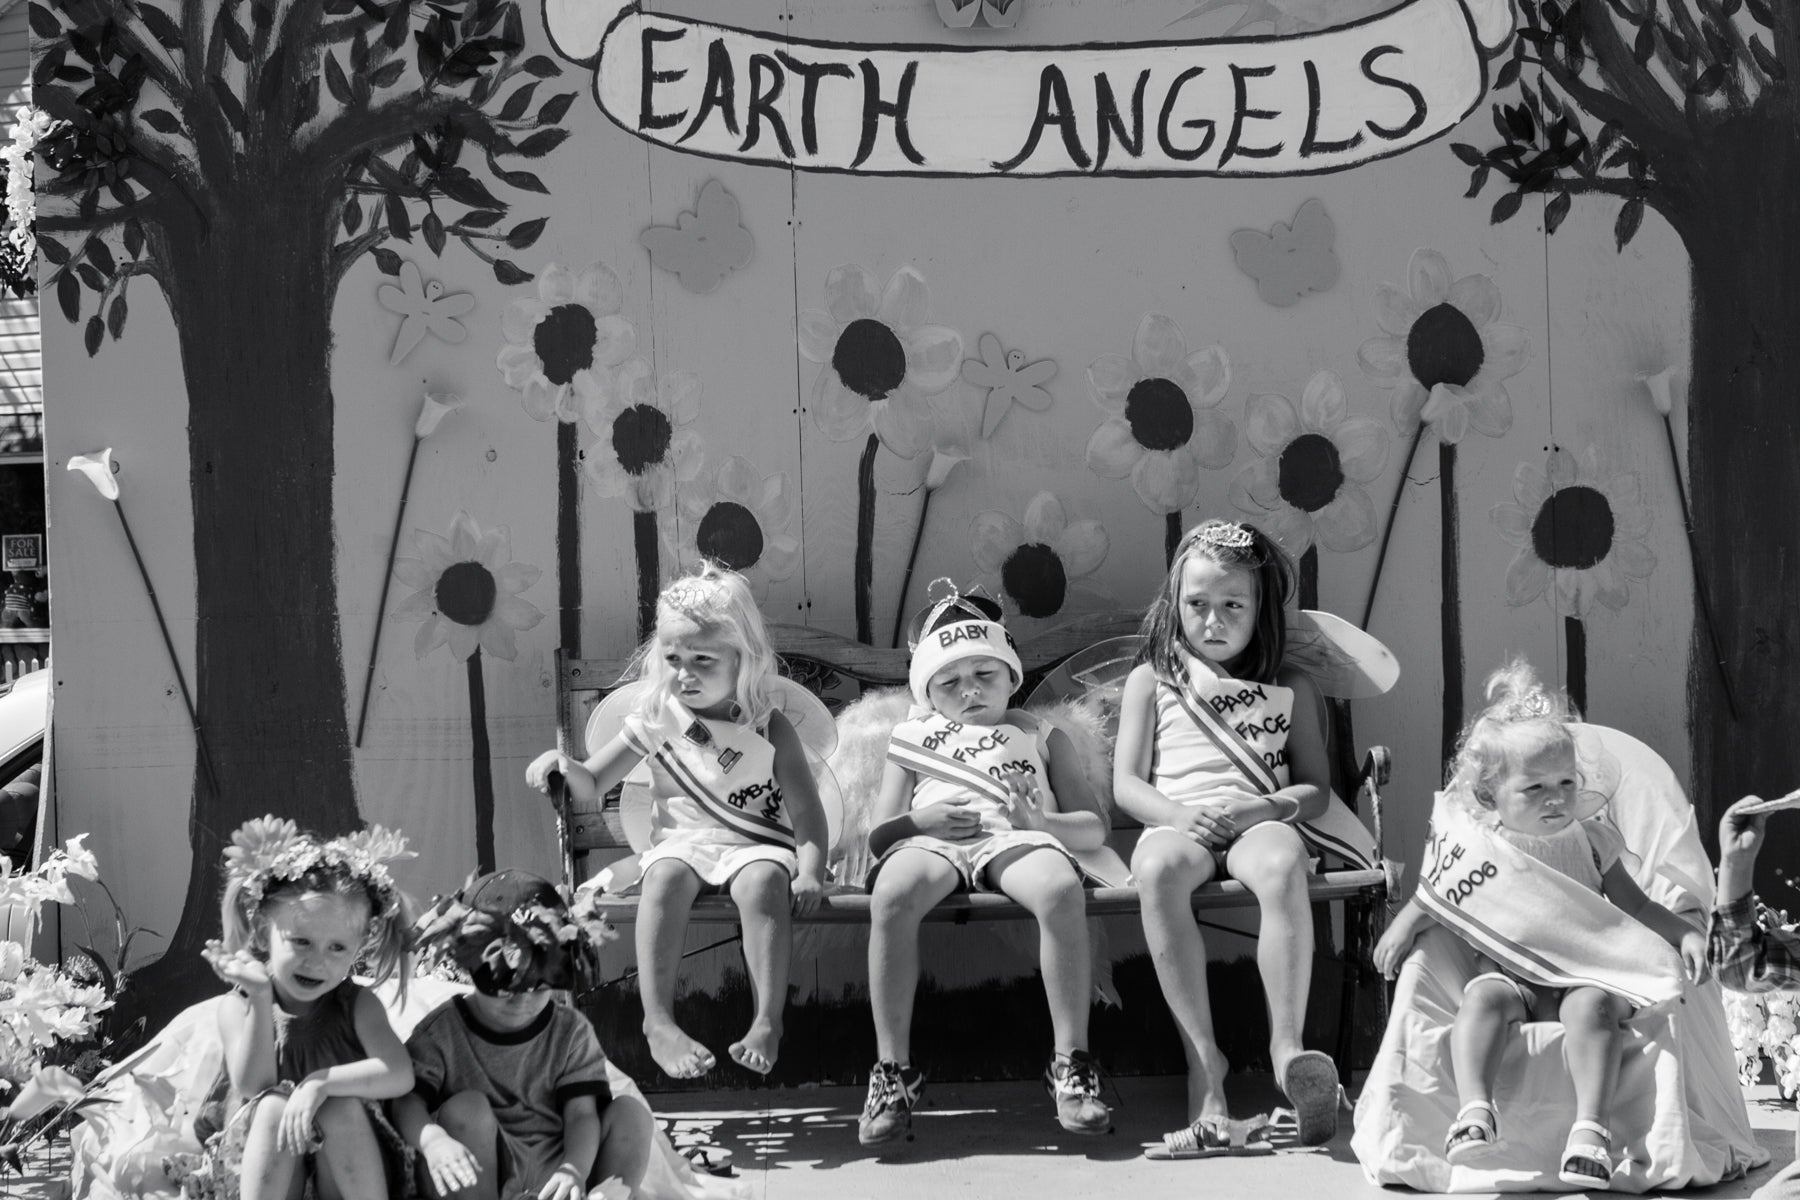 Earth Angels Black and White Photograph by Bill Bytsura